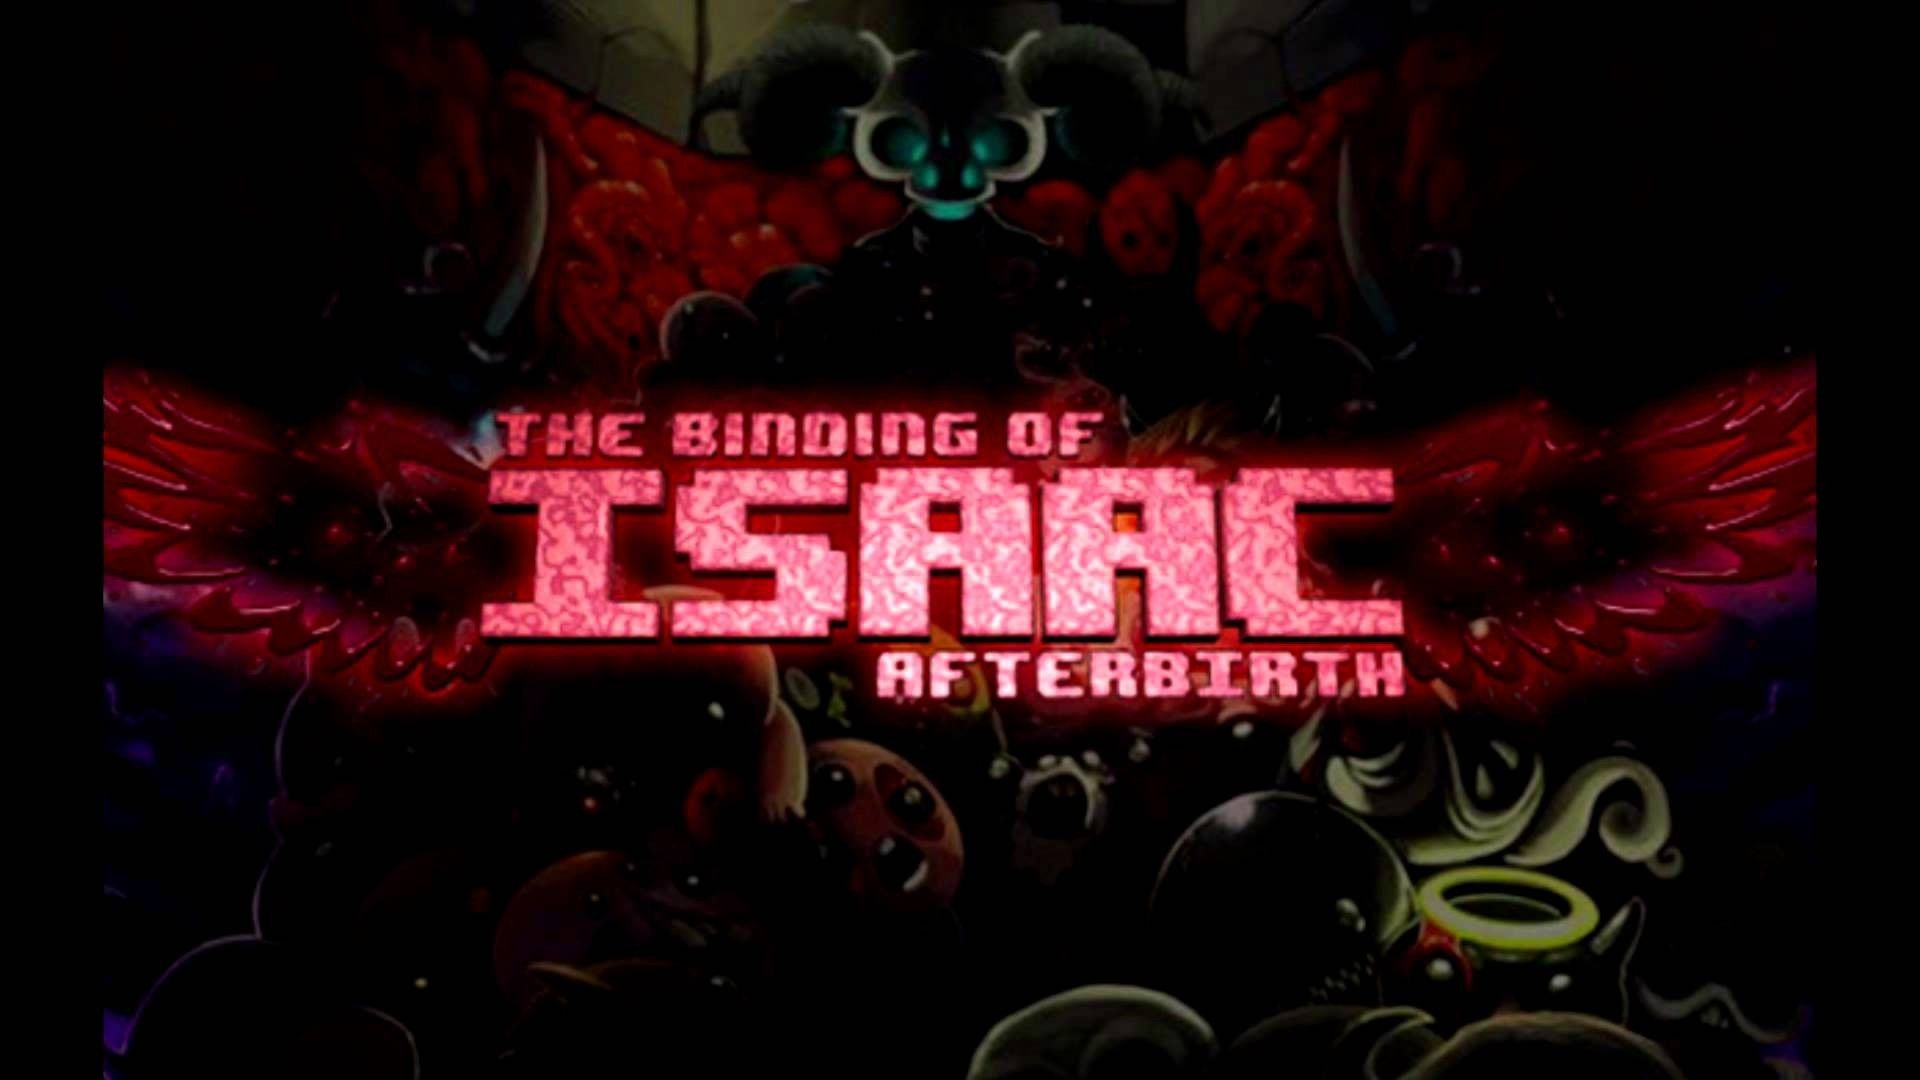 The Binding Of Isaac Afterbirth Wallpapers Hd The